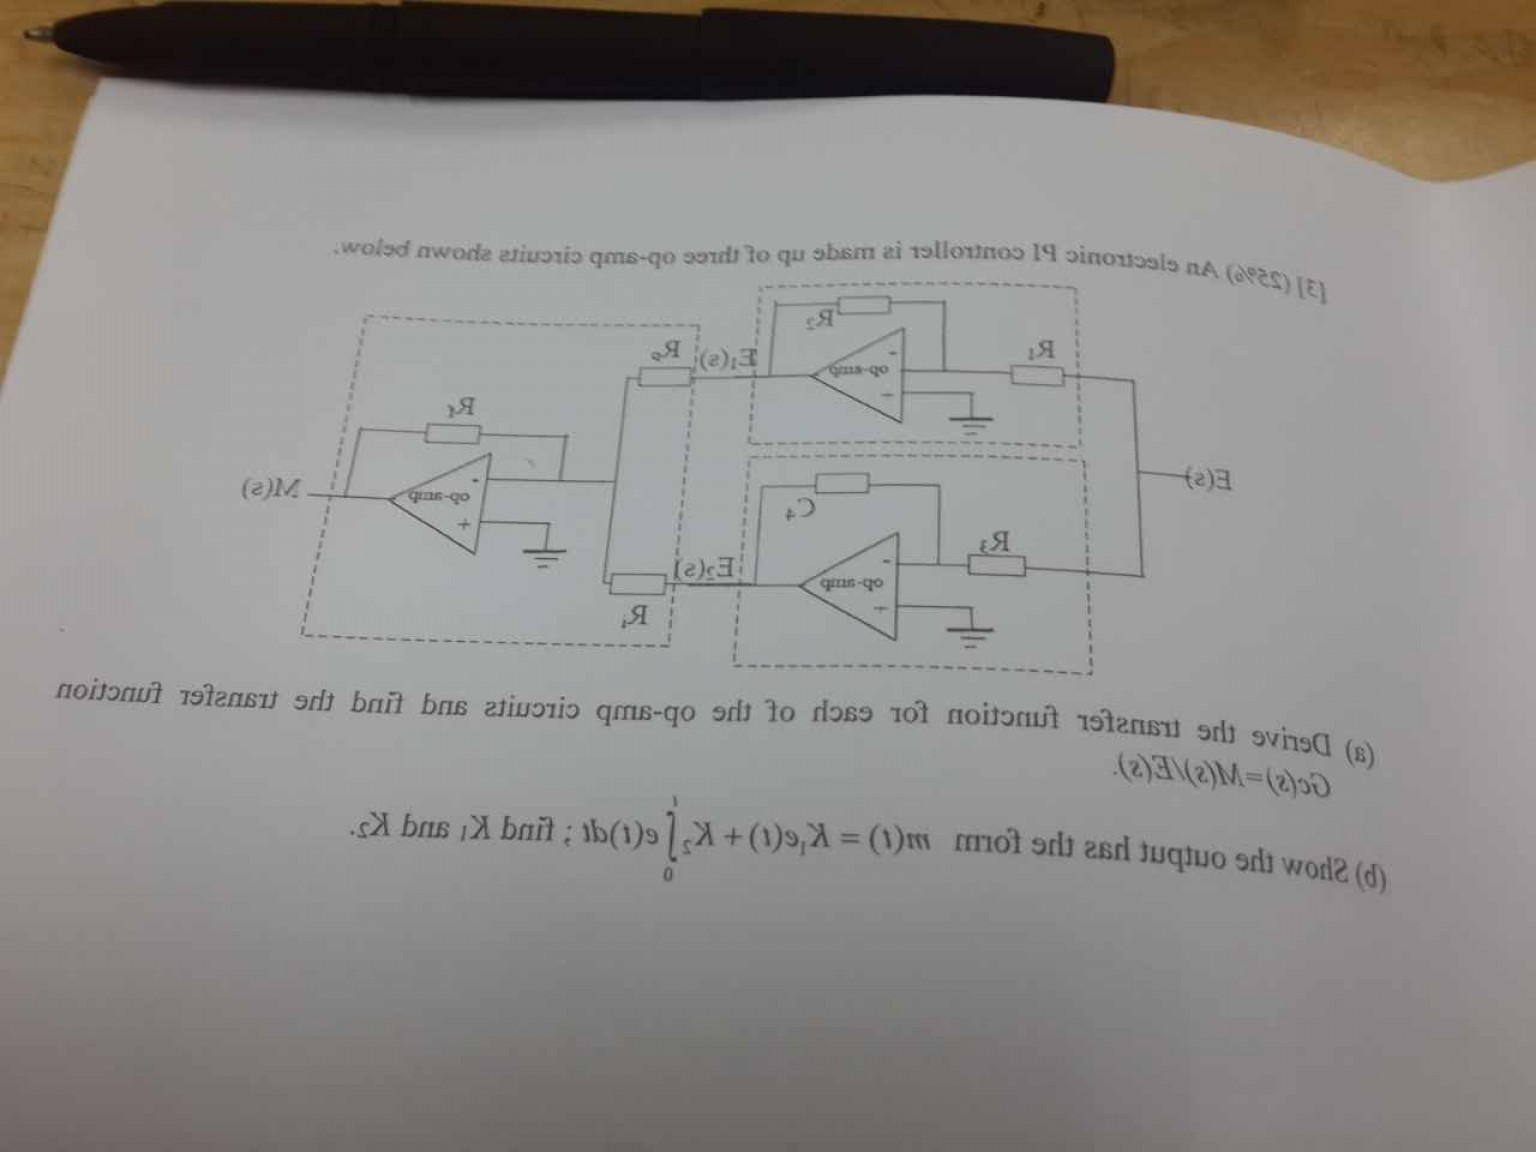 Reactance Vector Diagrams: Electrical Engineering Archive June